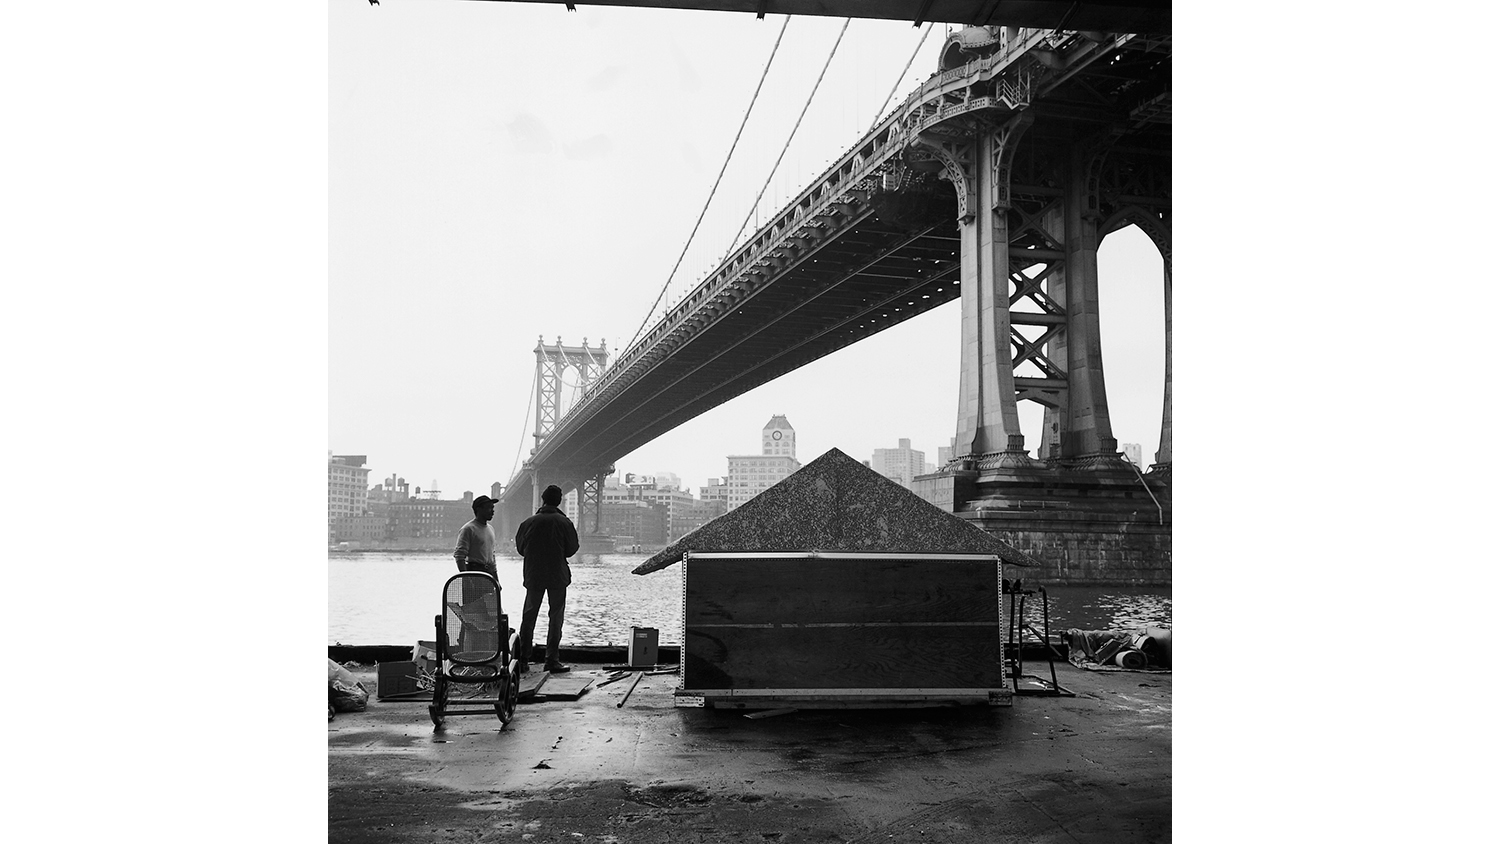 Margaret Morton, Mac's first house, East River, 1992